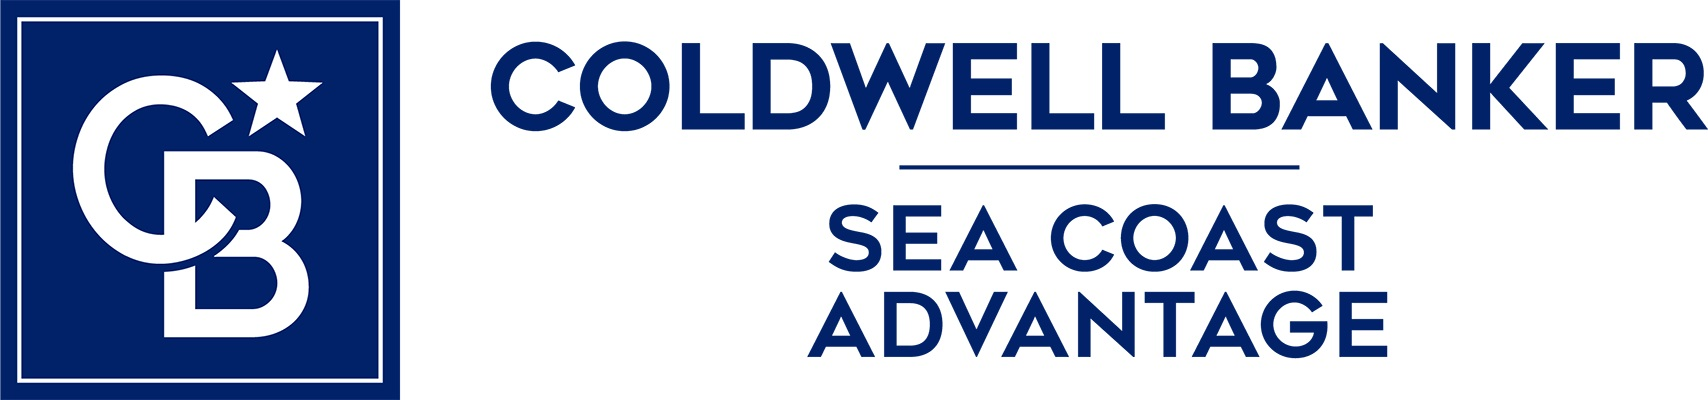 Jessica Kwasniewski - Coldwell Banker Sea Coast Advantage Realty